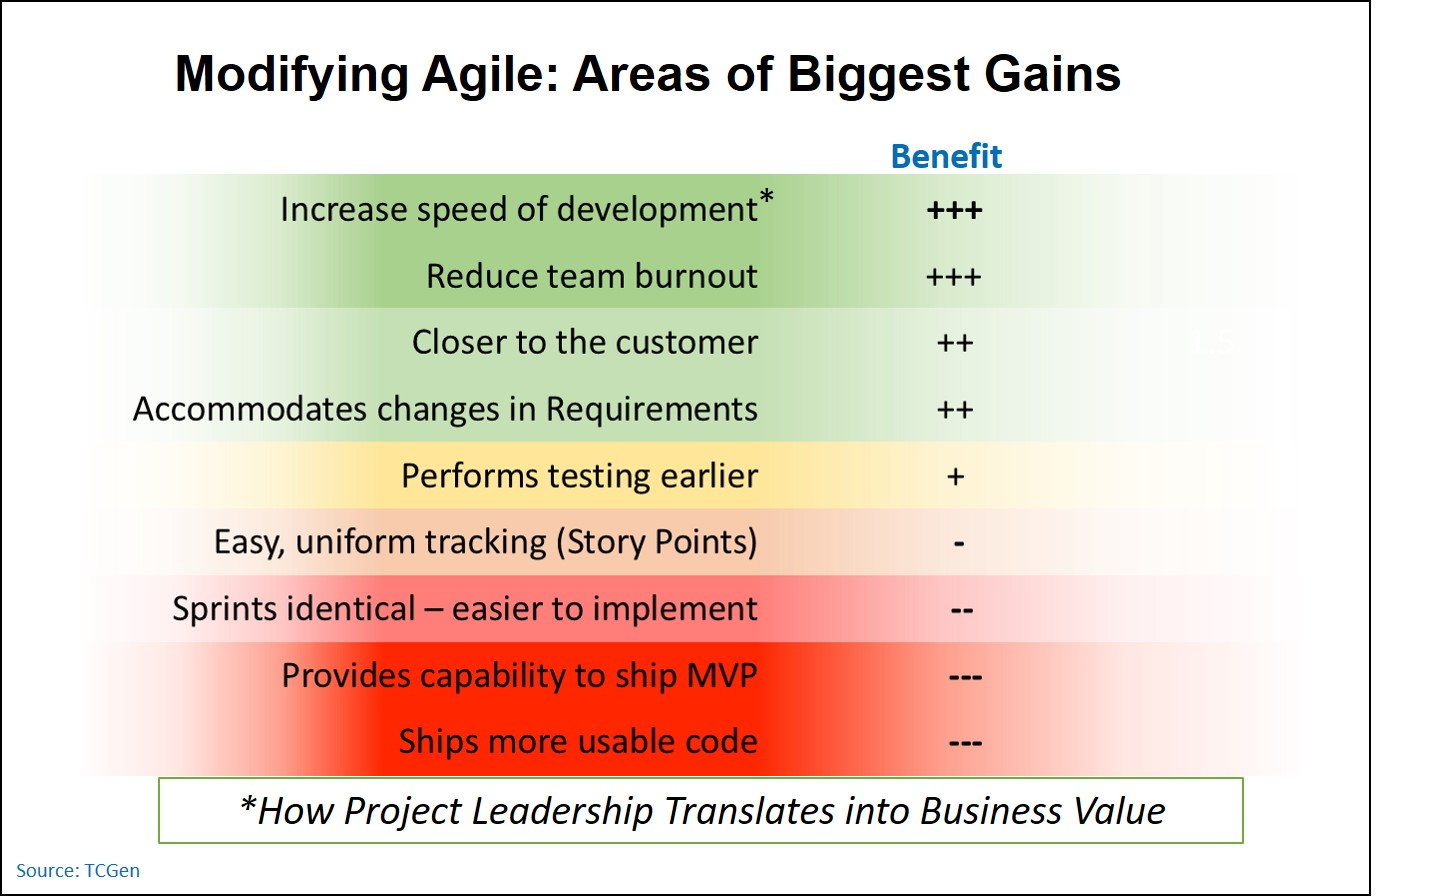 Benefits of modifying agile